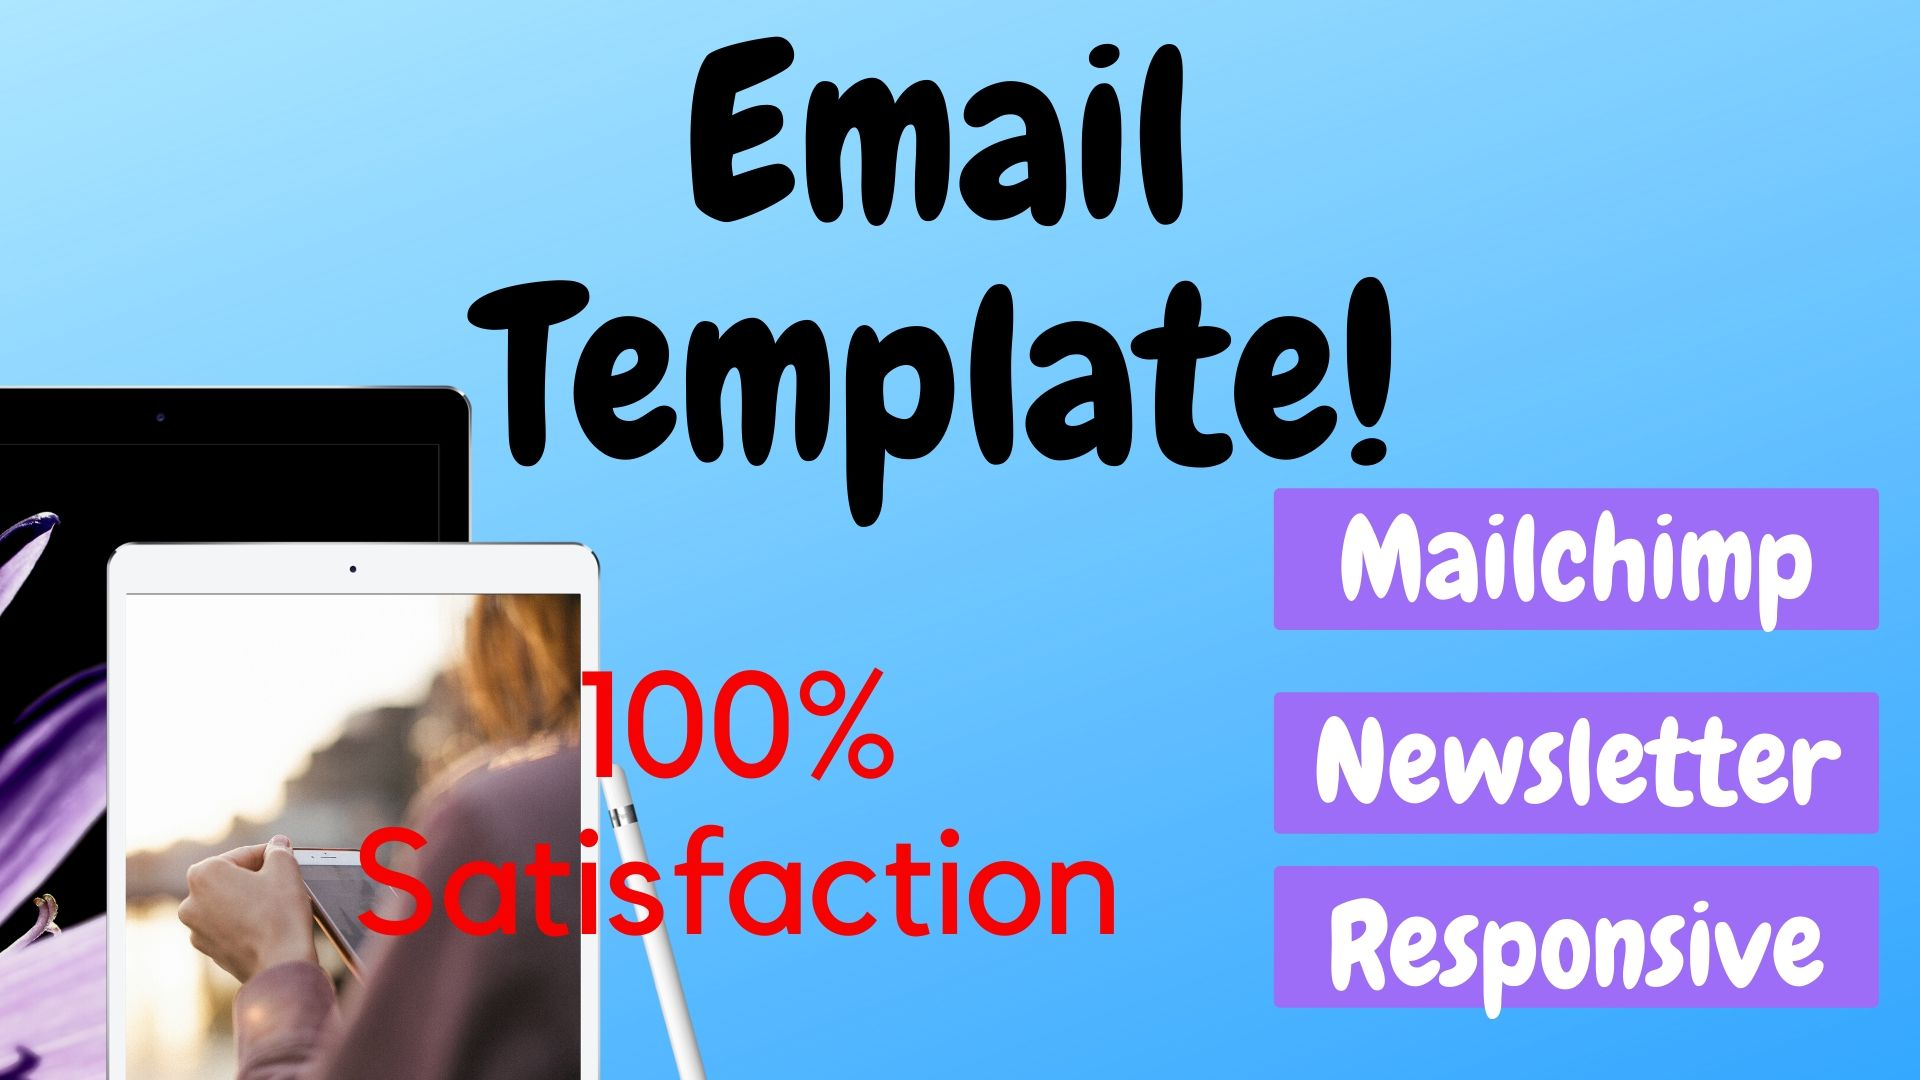 I will design responsive email template newsletter.